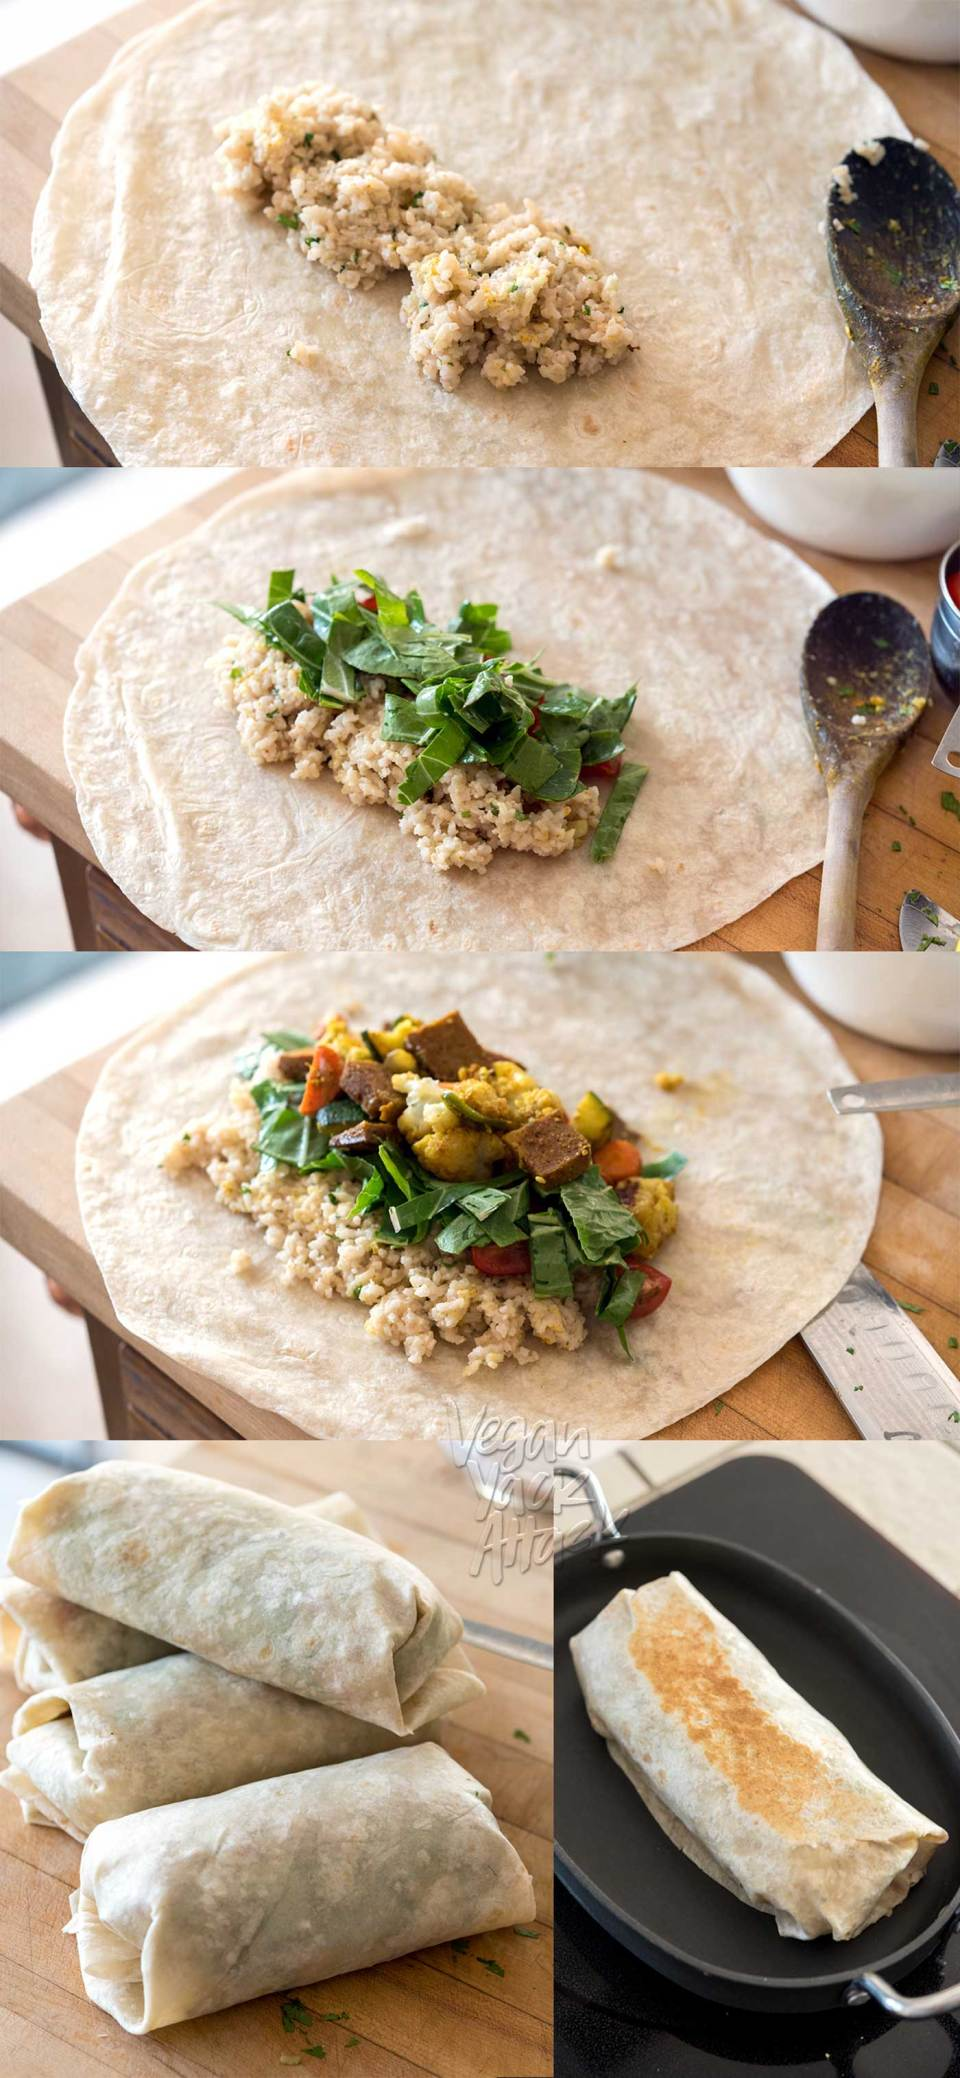 This Curry Cauliflower Burrito is easy-to-make, filled with awesome flavors, and can even be frozen for weekly lunches! Made with delicious Sweet Earth Foods' Curry Satay. Mmm.. #vegan #nutfree #veganyackattack